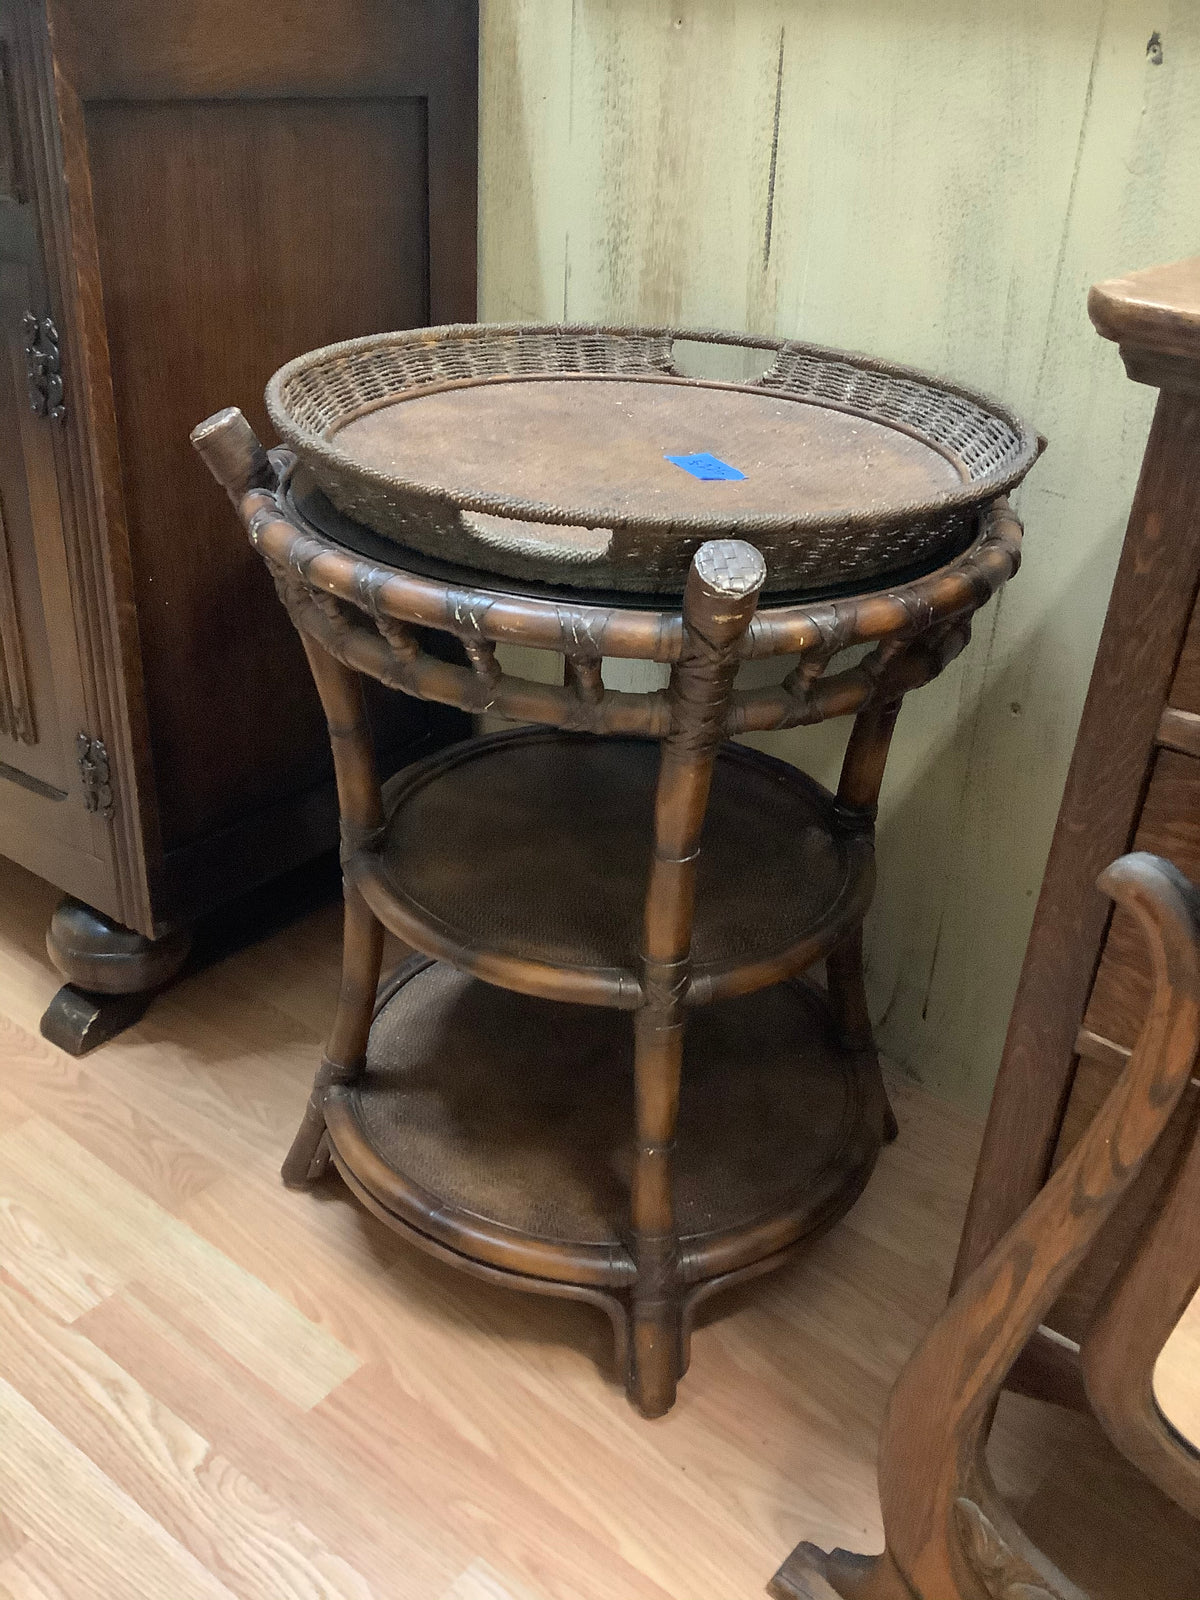 Round wicker table with glass top and tray